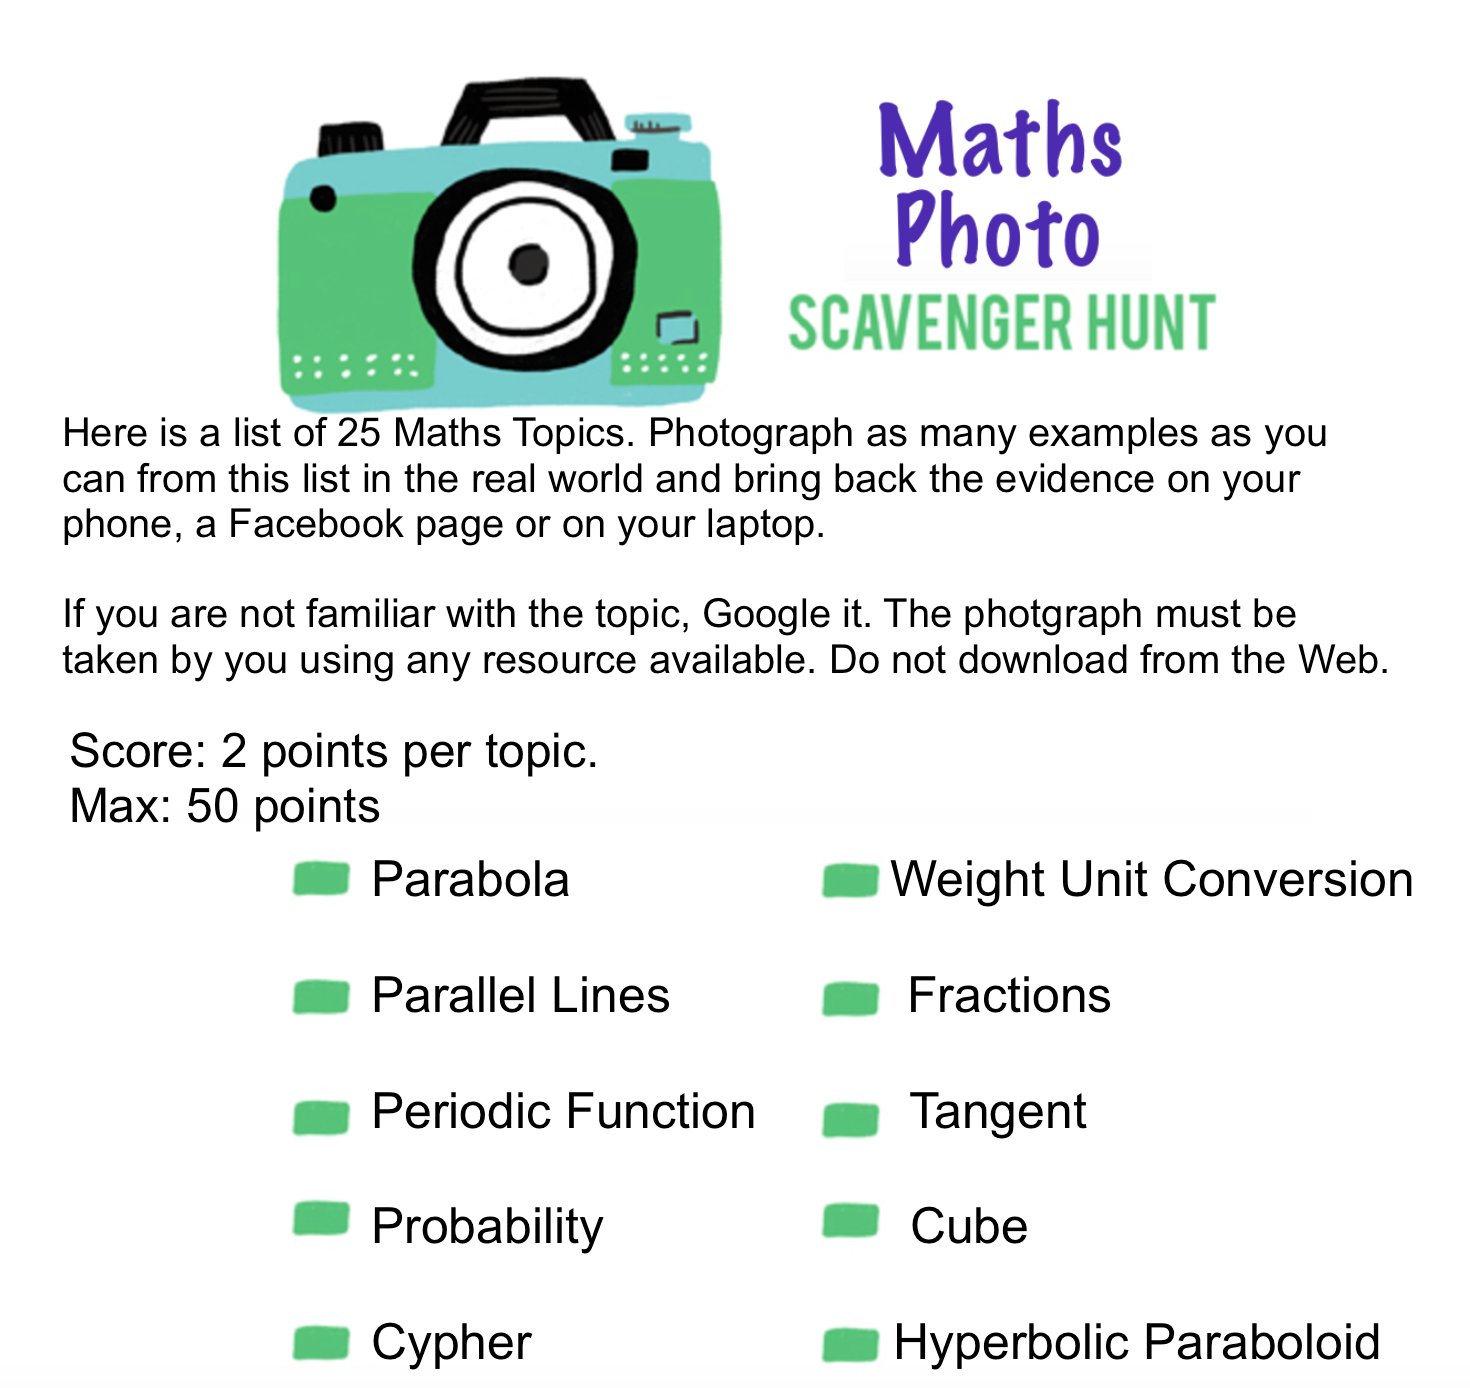 Maths Photo Scavenger Hunt Worksheet 1